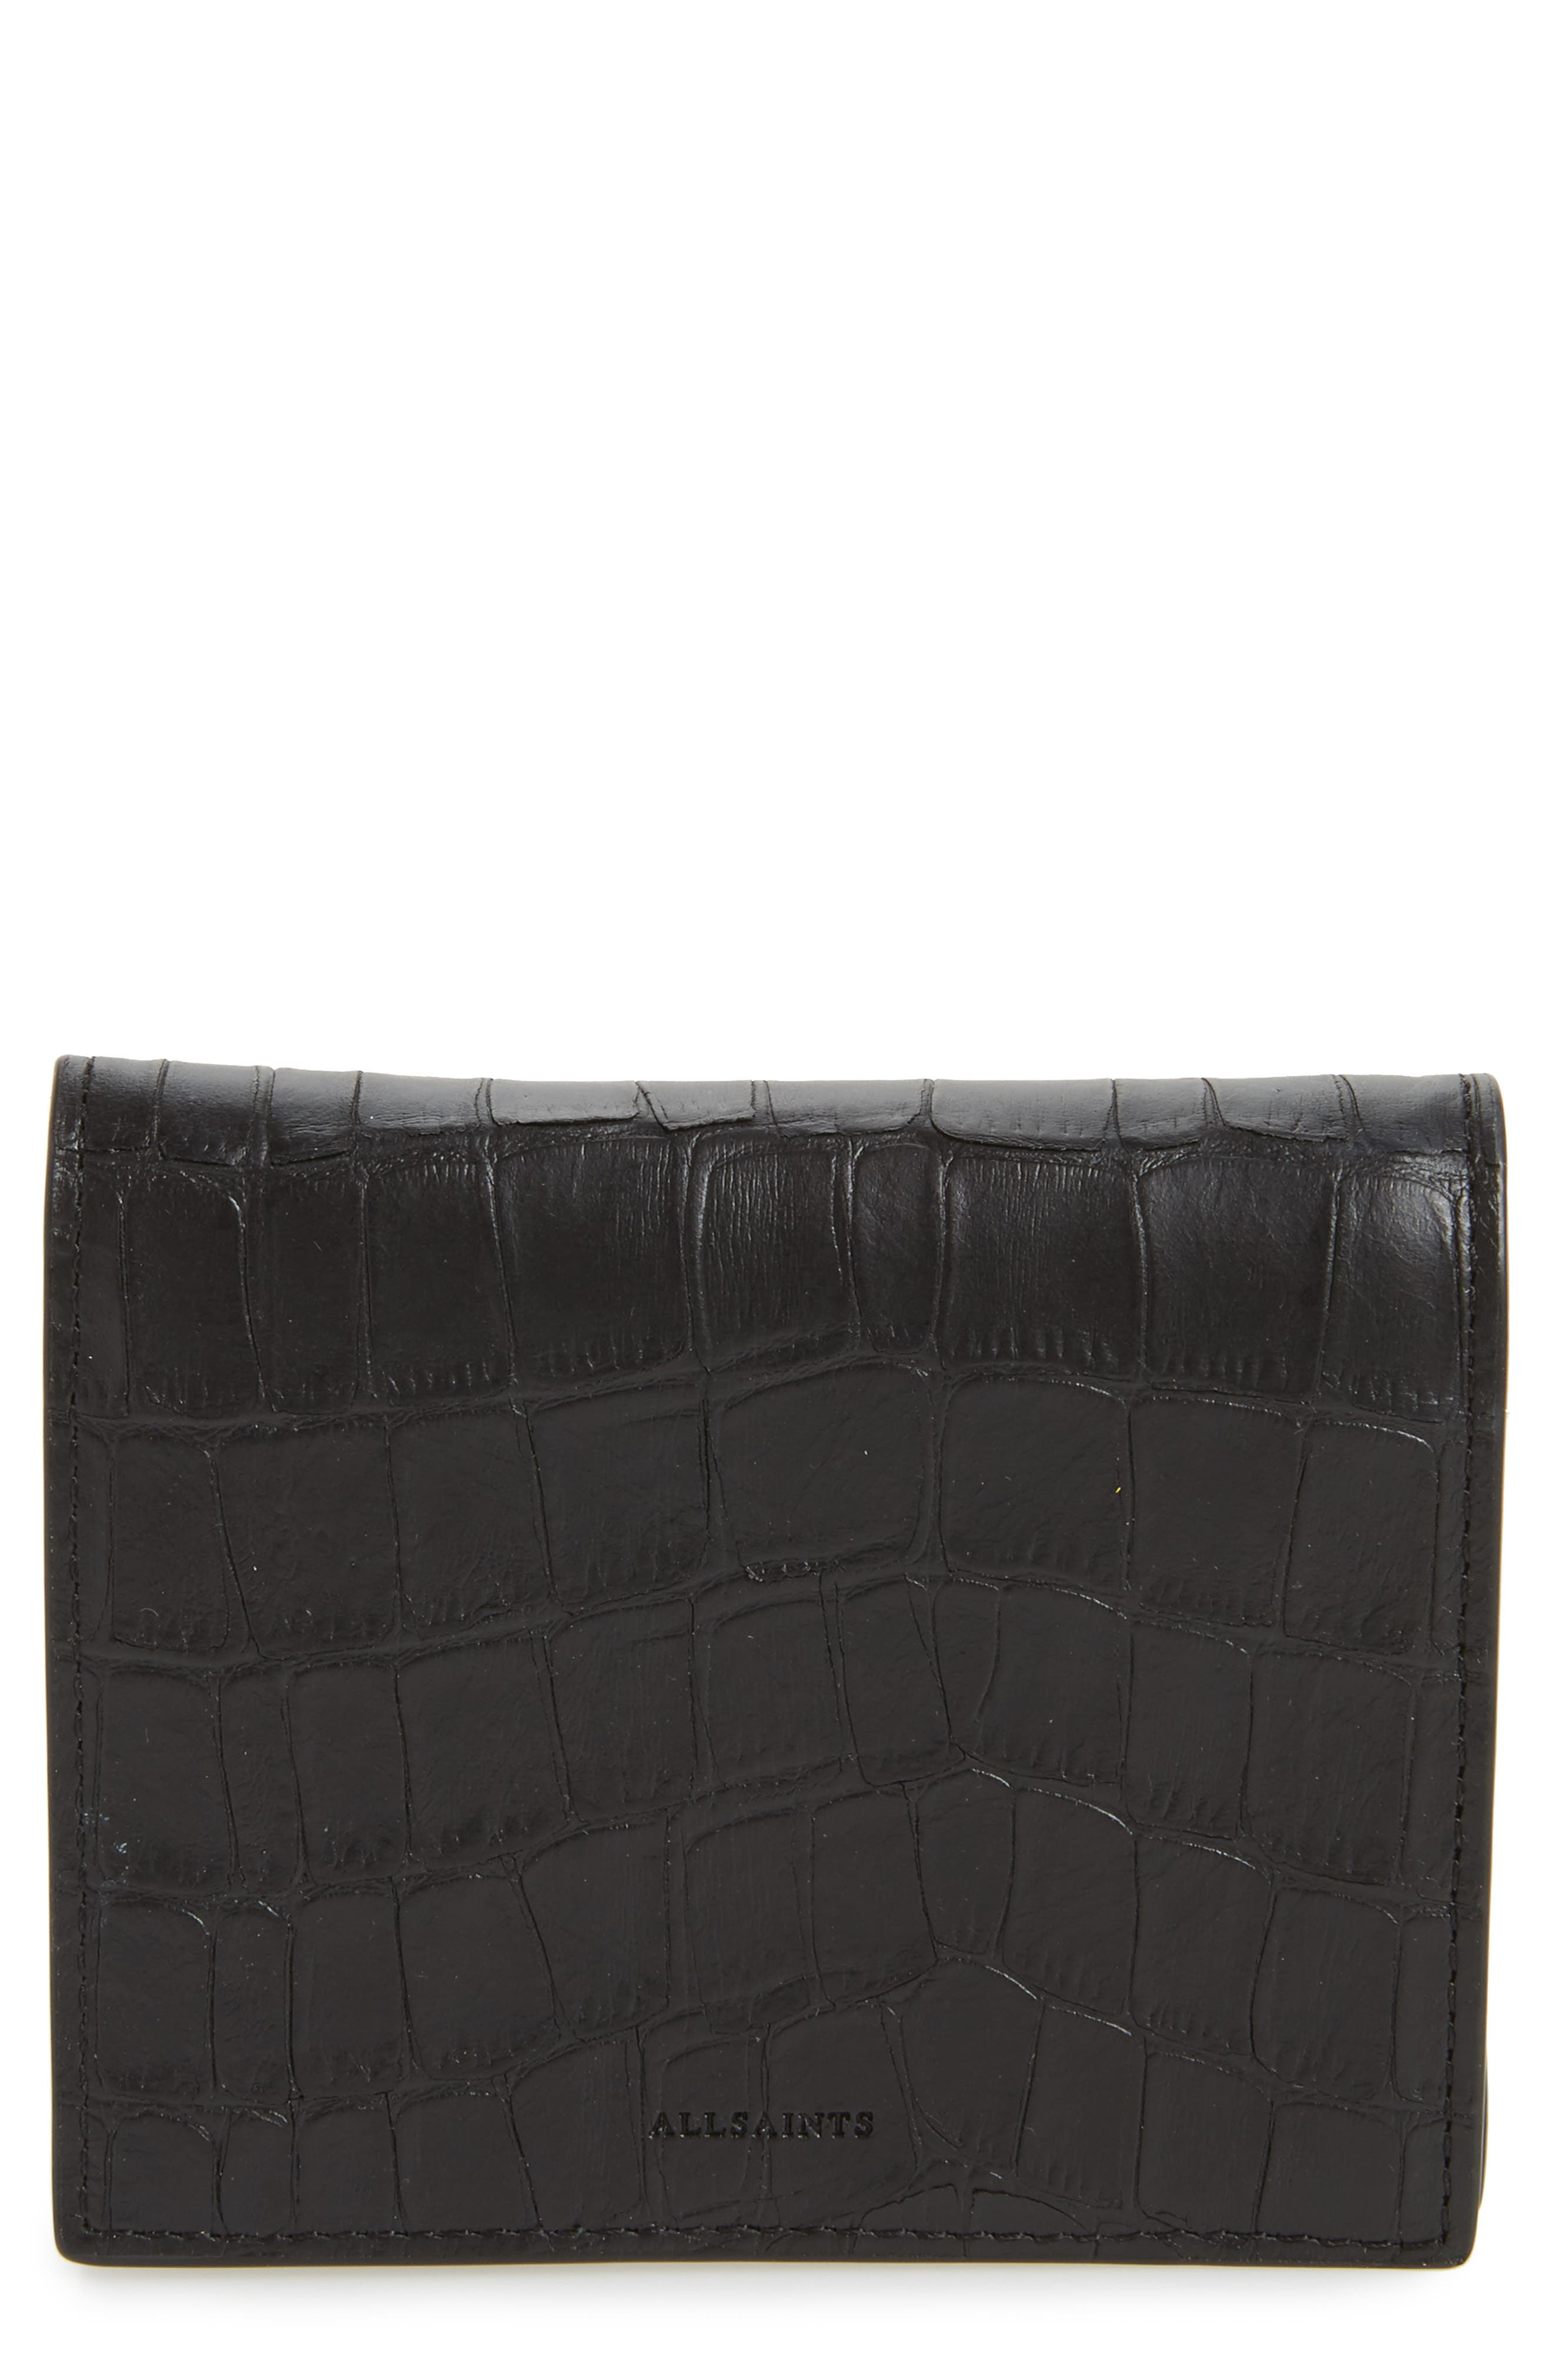 Small Keel Croc Embossed Leather Wallet,                         Main,                         color, Black